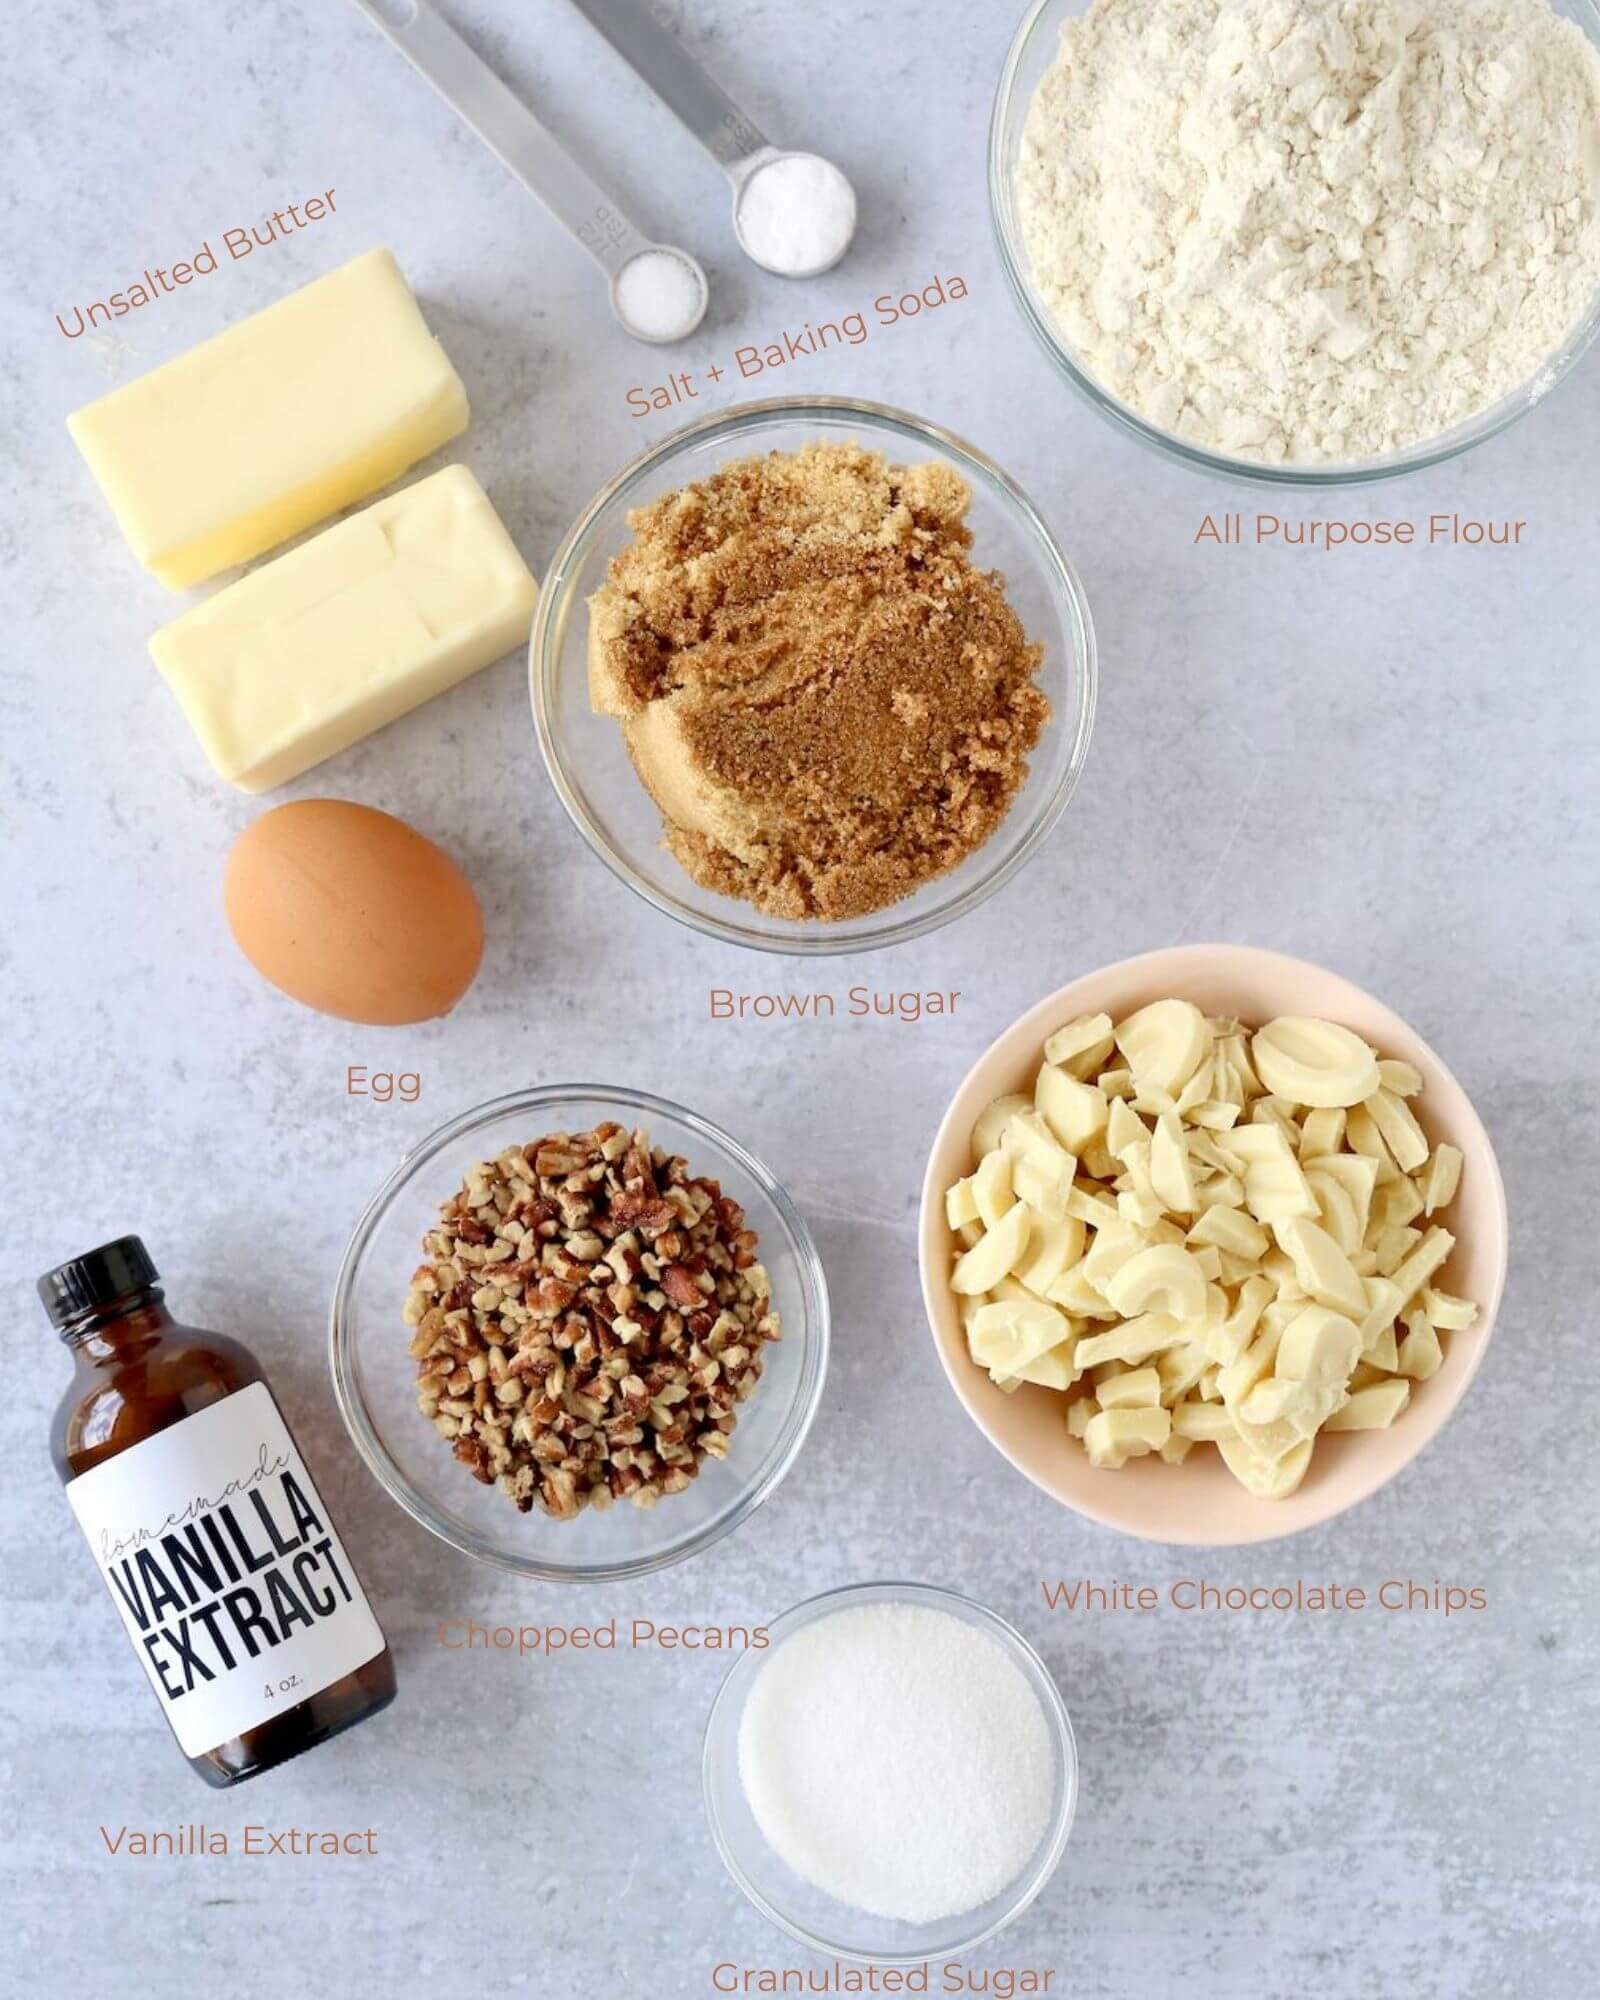 individual bowls of flour, light brown sugar, white chocolate, chopped pecans, granulated sugar, two sticks of butter and a bottle of vanilla extract.